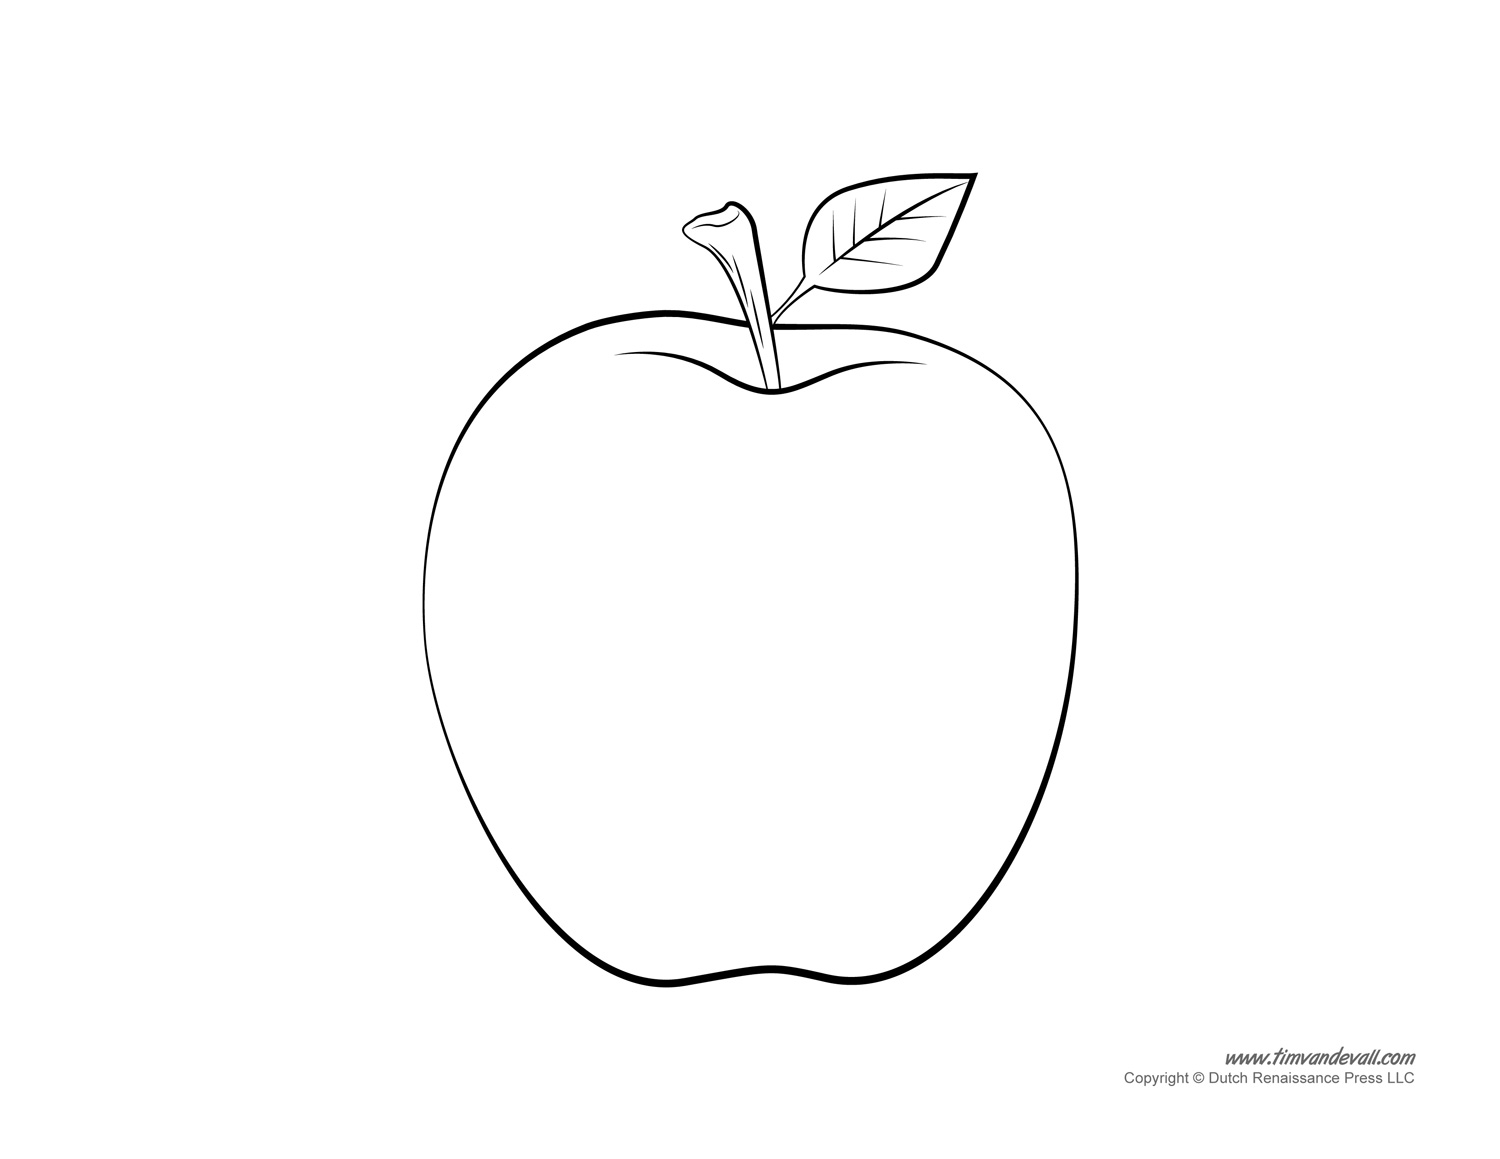 photo regarding Apple Stencil Printable named Printable Apple Templates in direction of Generate Apple Crafts for Preschool